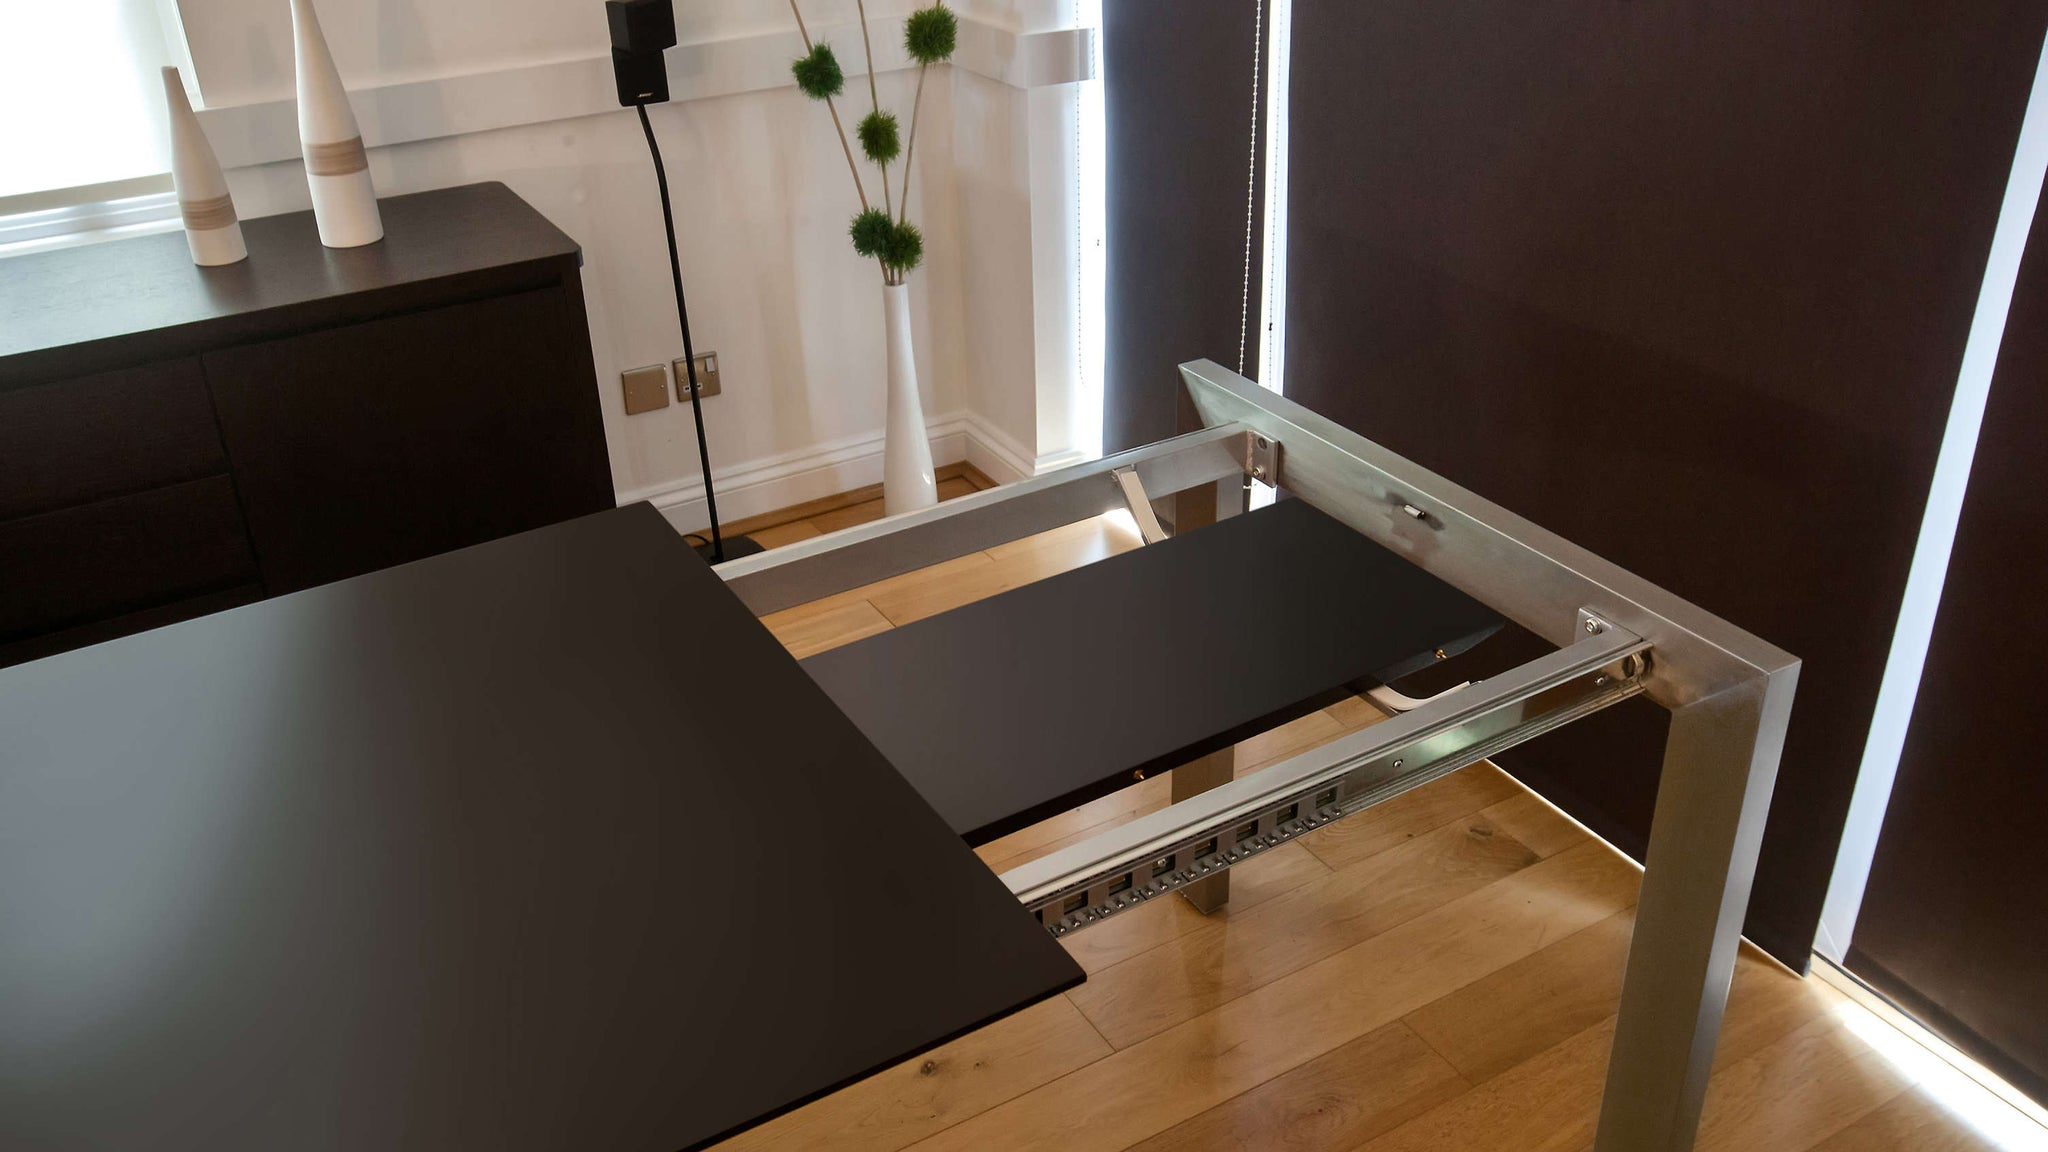 Matt Black Dining Table with Extension Leaf Storage